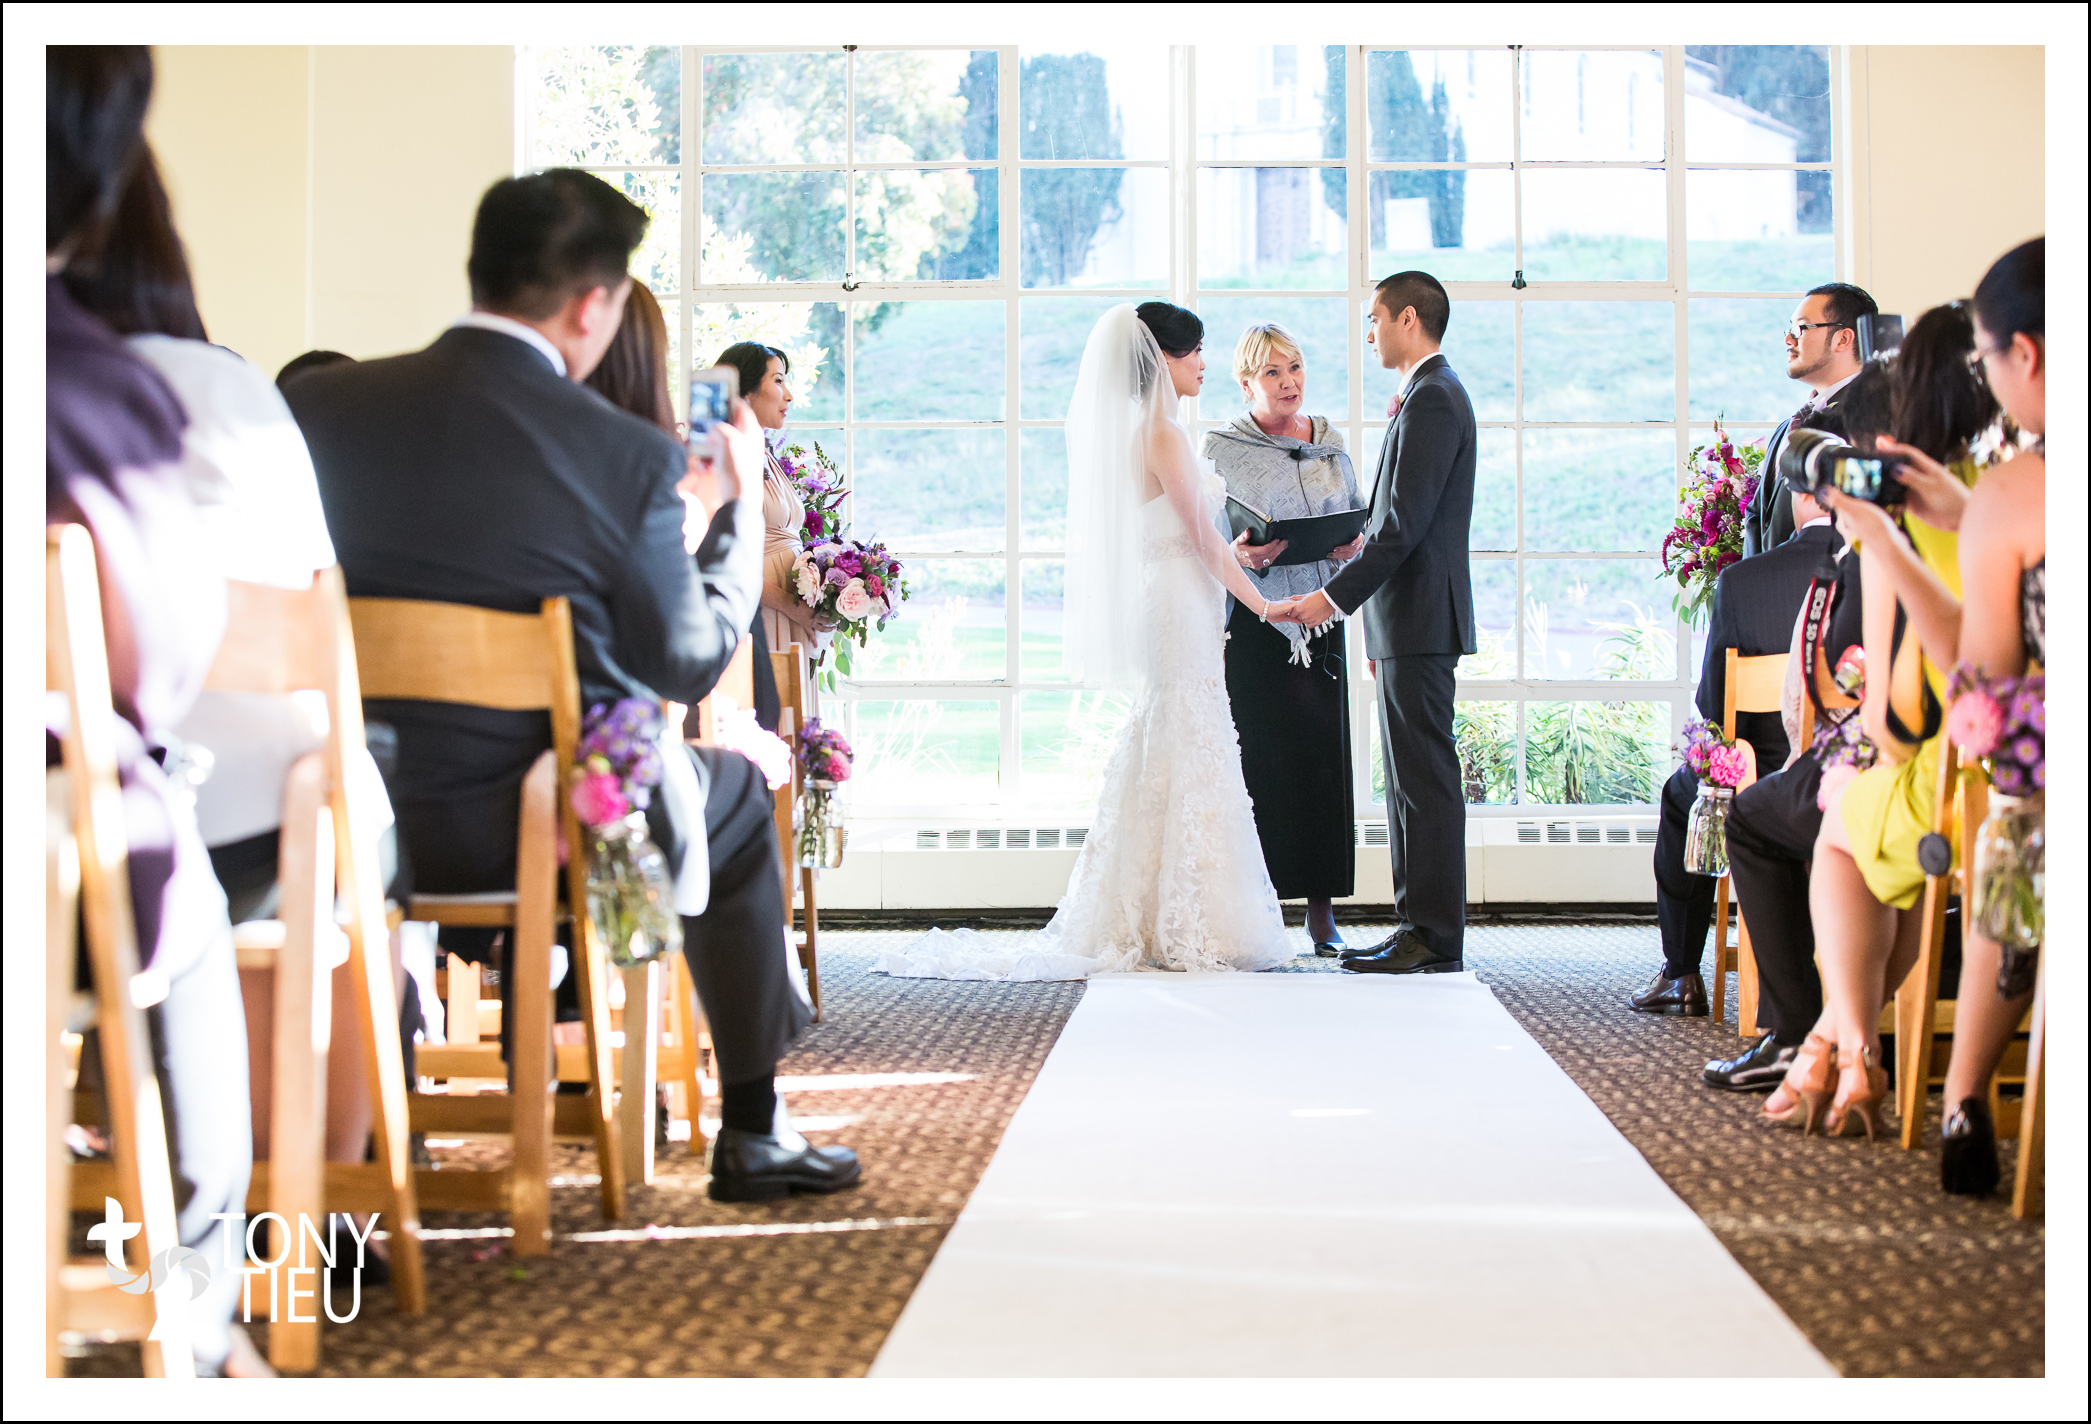 Tony_Tieu_Connie_Wedding_10